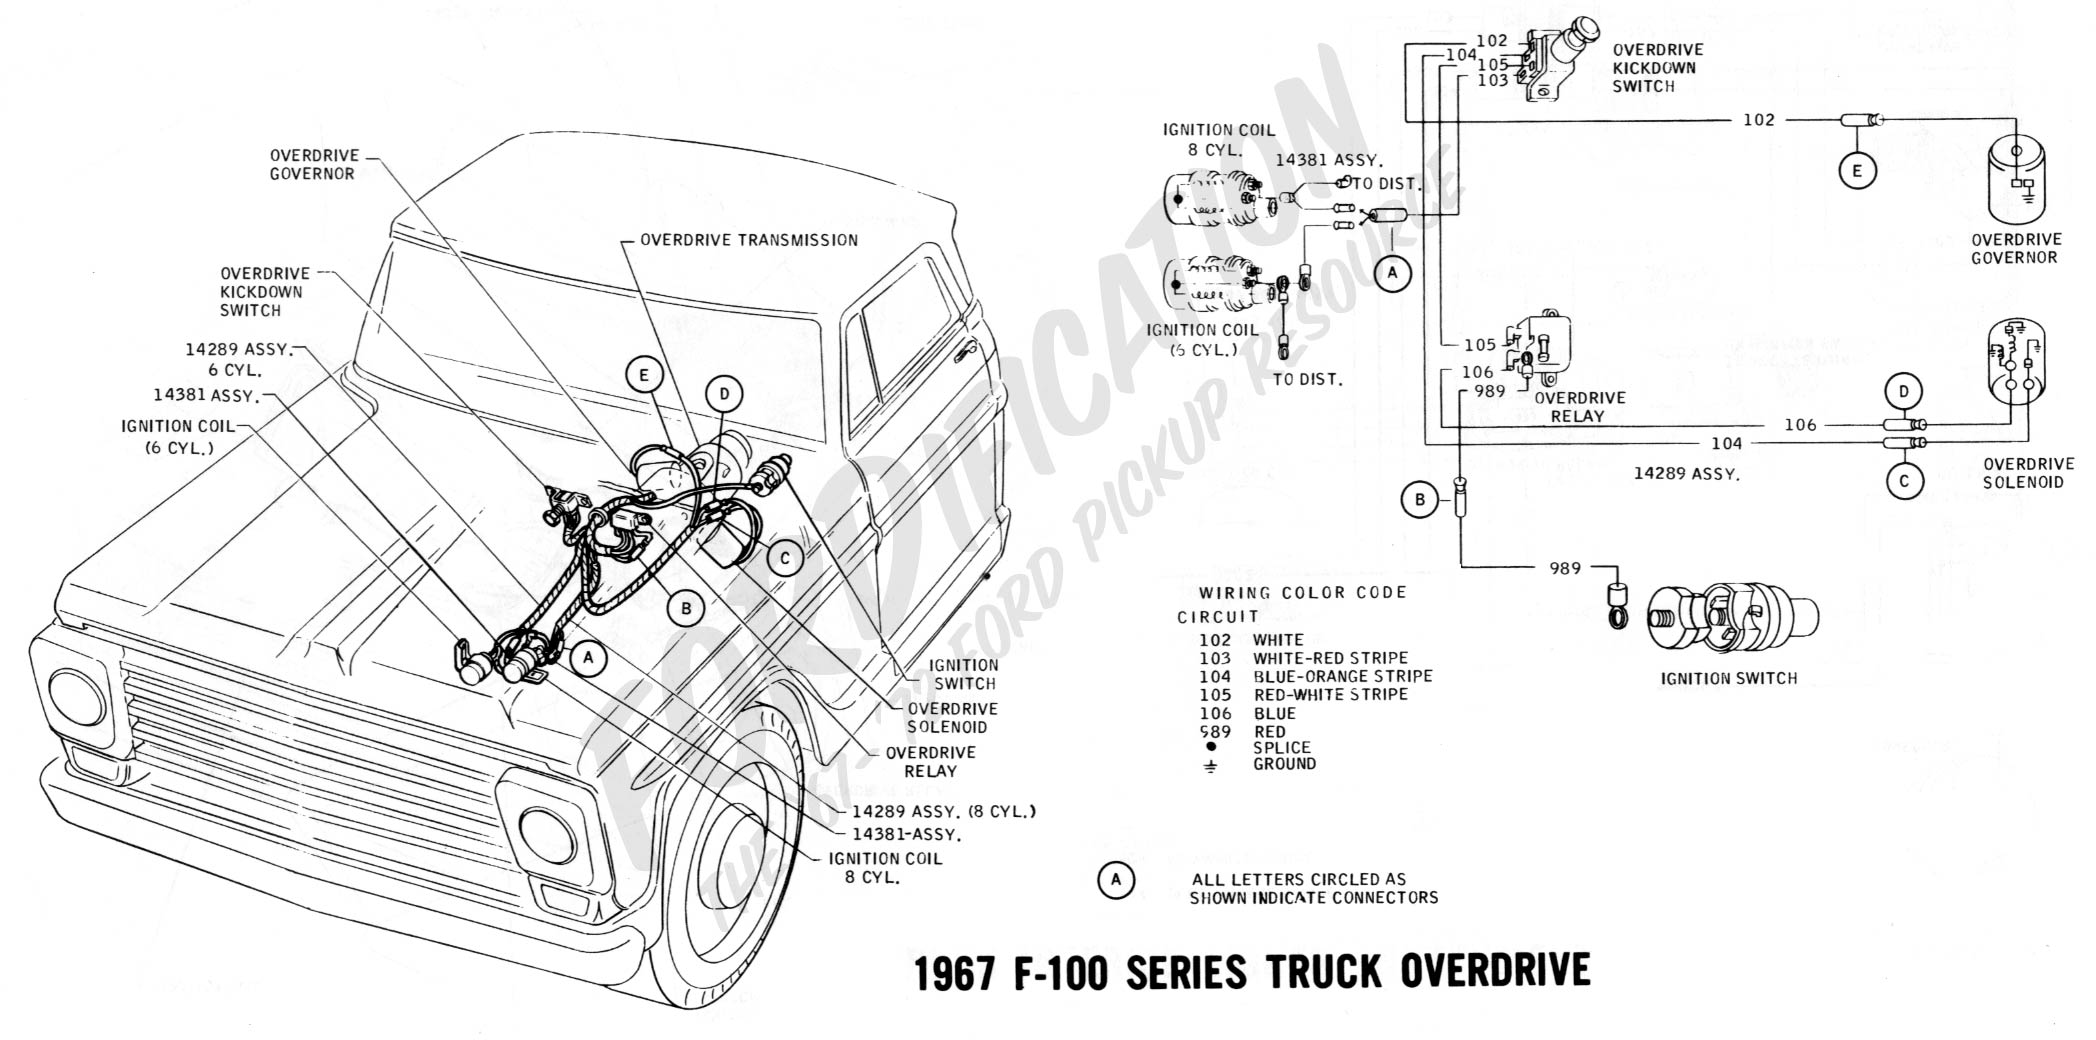 wiring 1967overdrive2 ford truck technical drawings and schematics section h wiring 1969 ford f100 steering column wiring diagram at gsmportal.co